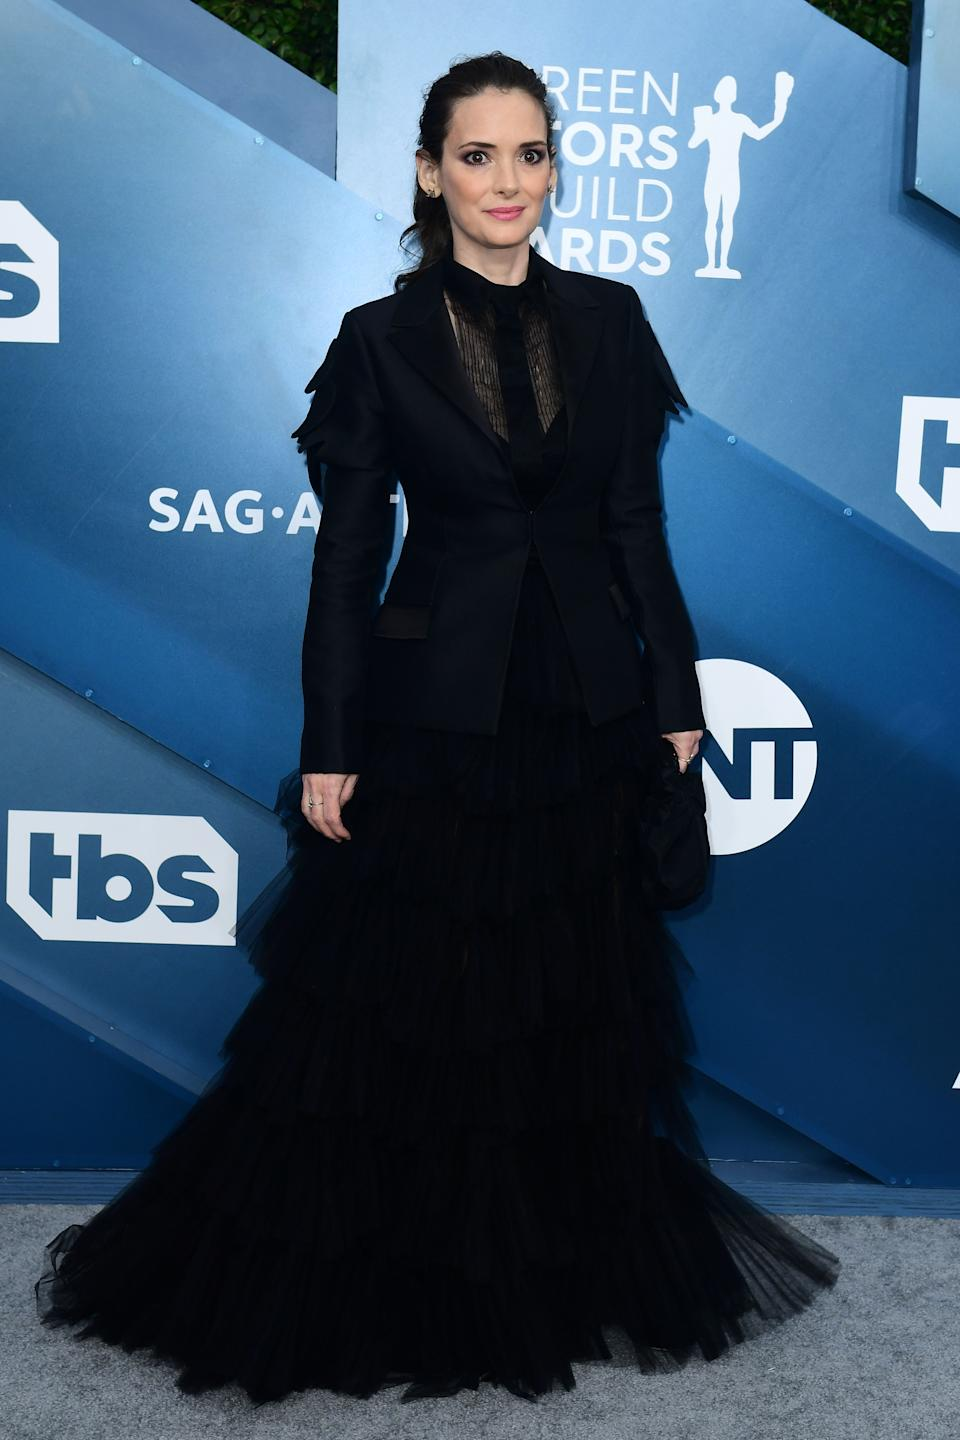 <h2>Winona Ryder in Dior</h2><br>Winona Ryder is bringing back her coveted '90s all-black looks in this sheer blazer-dress combo.